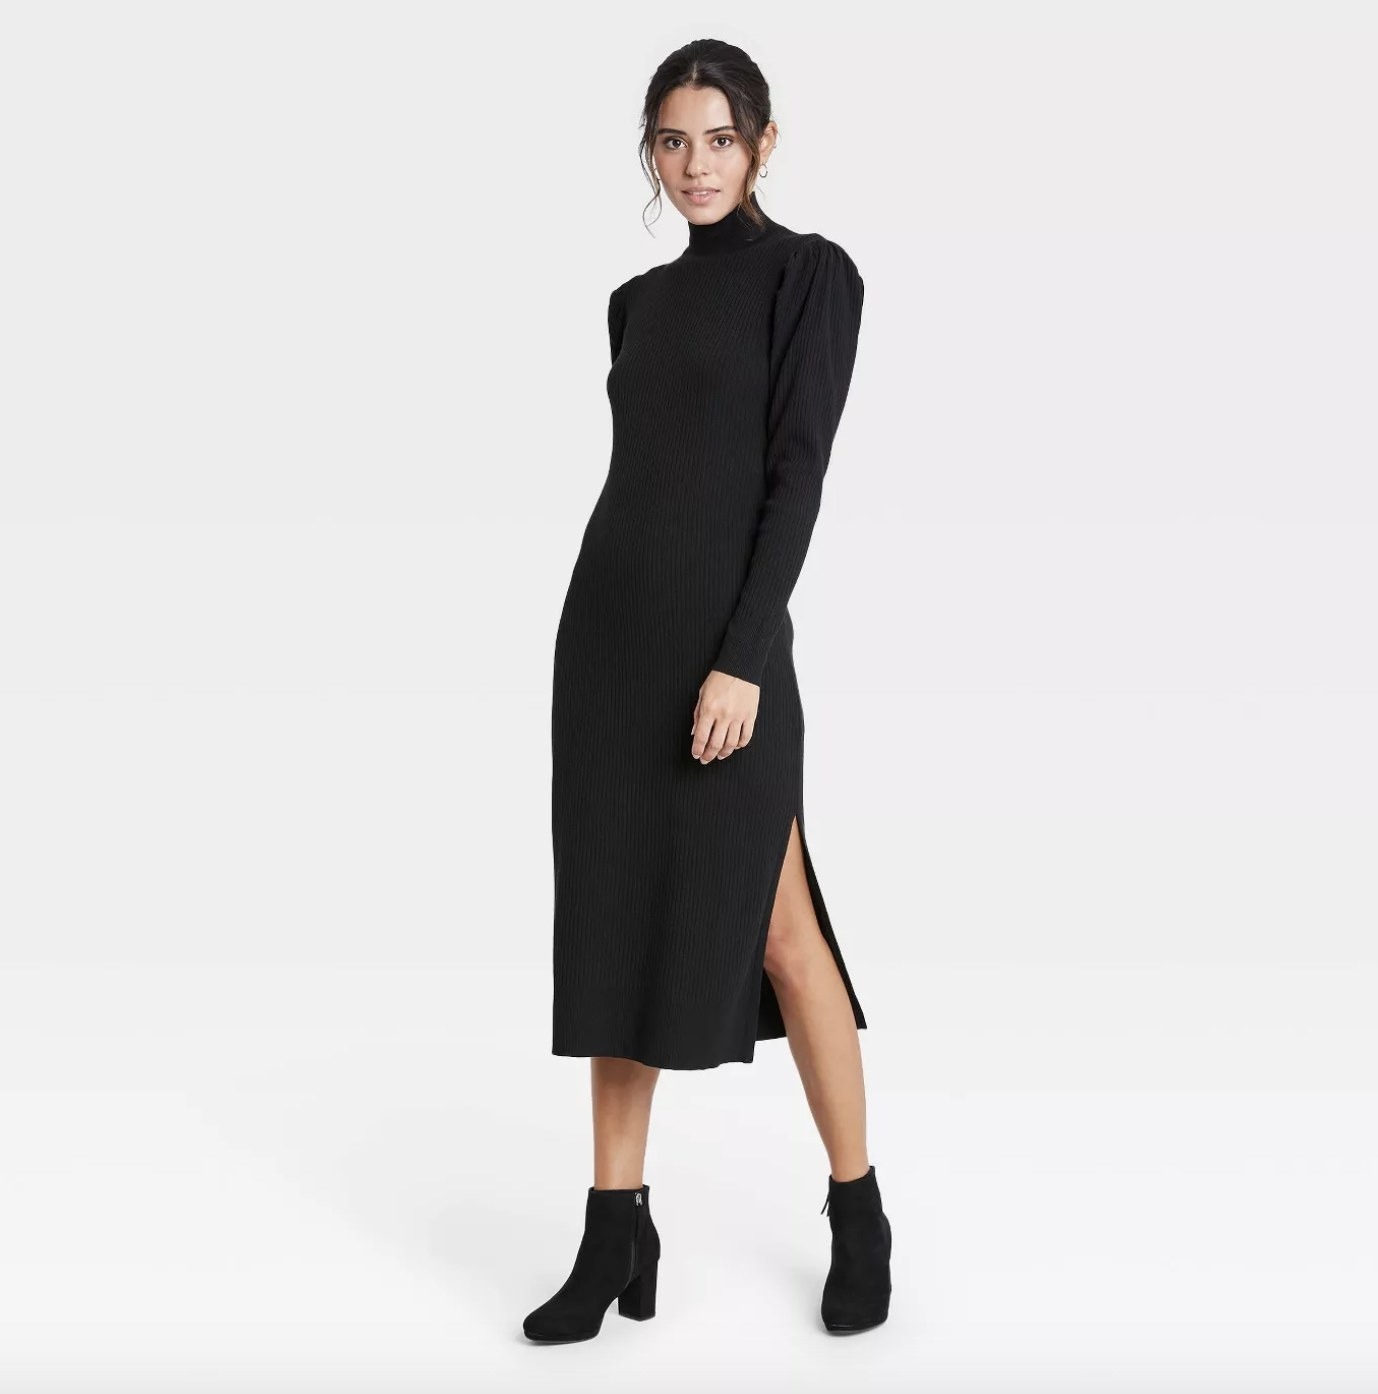 the sweater dress in black